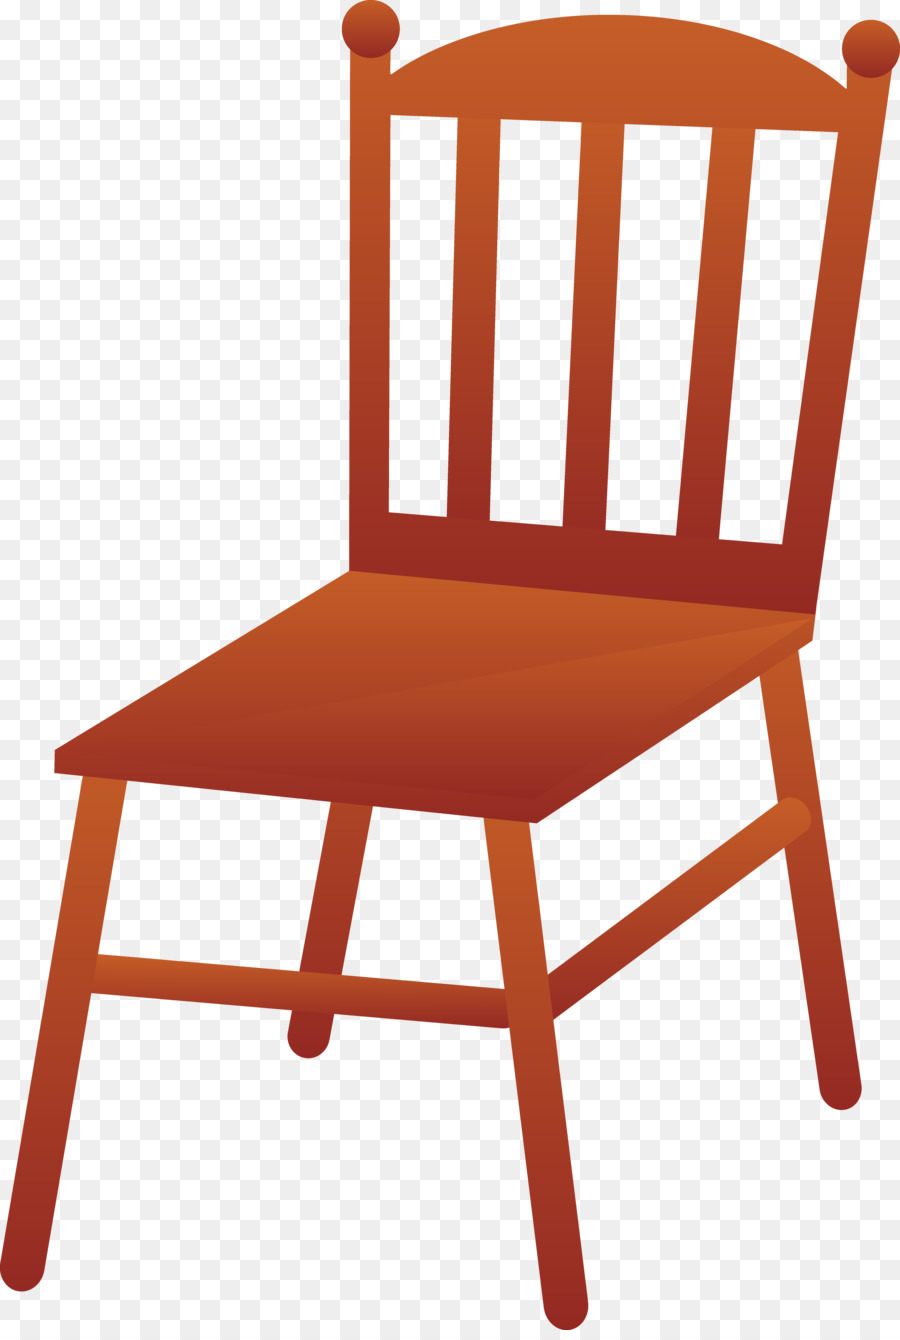 Chair clipart images vector free library Wood Table clipart - Chair, Furniture, Product, transparent clip art vector free library